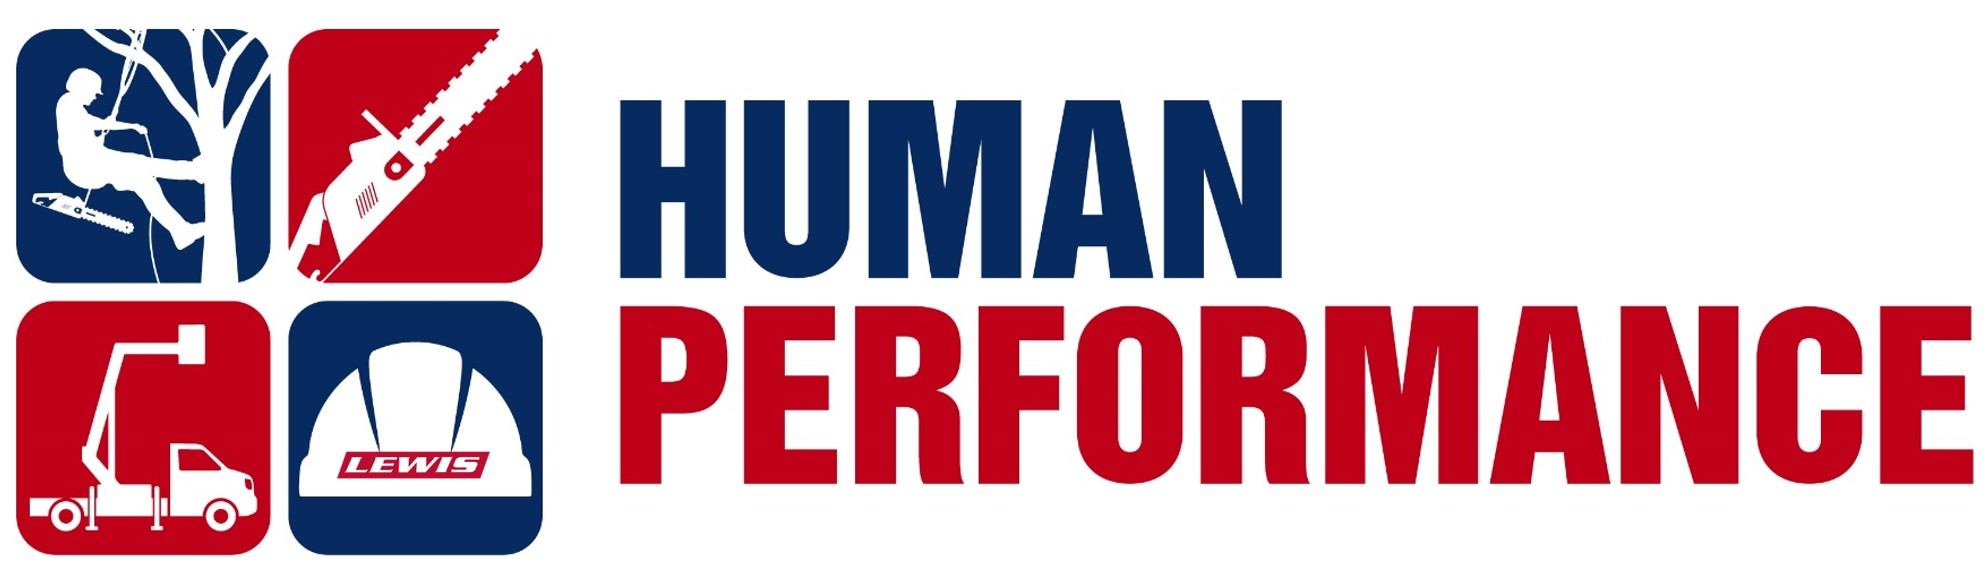 Human Performance in Utility Line Clearance